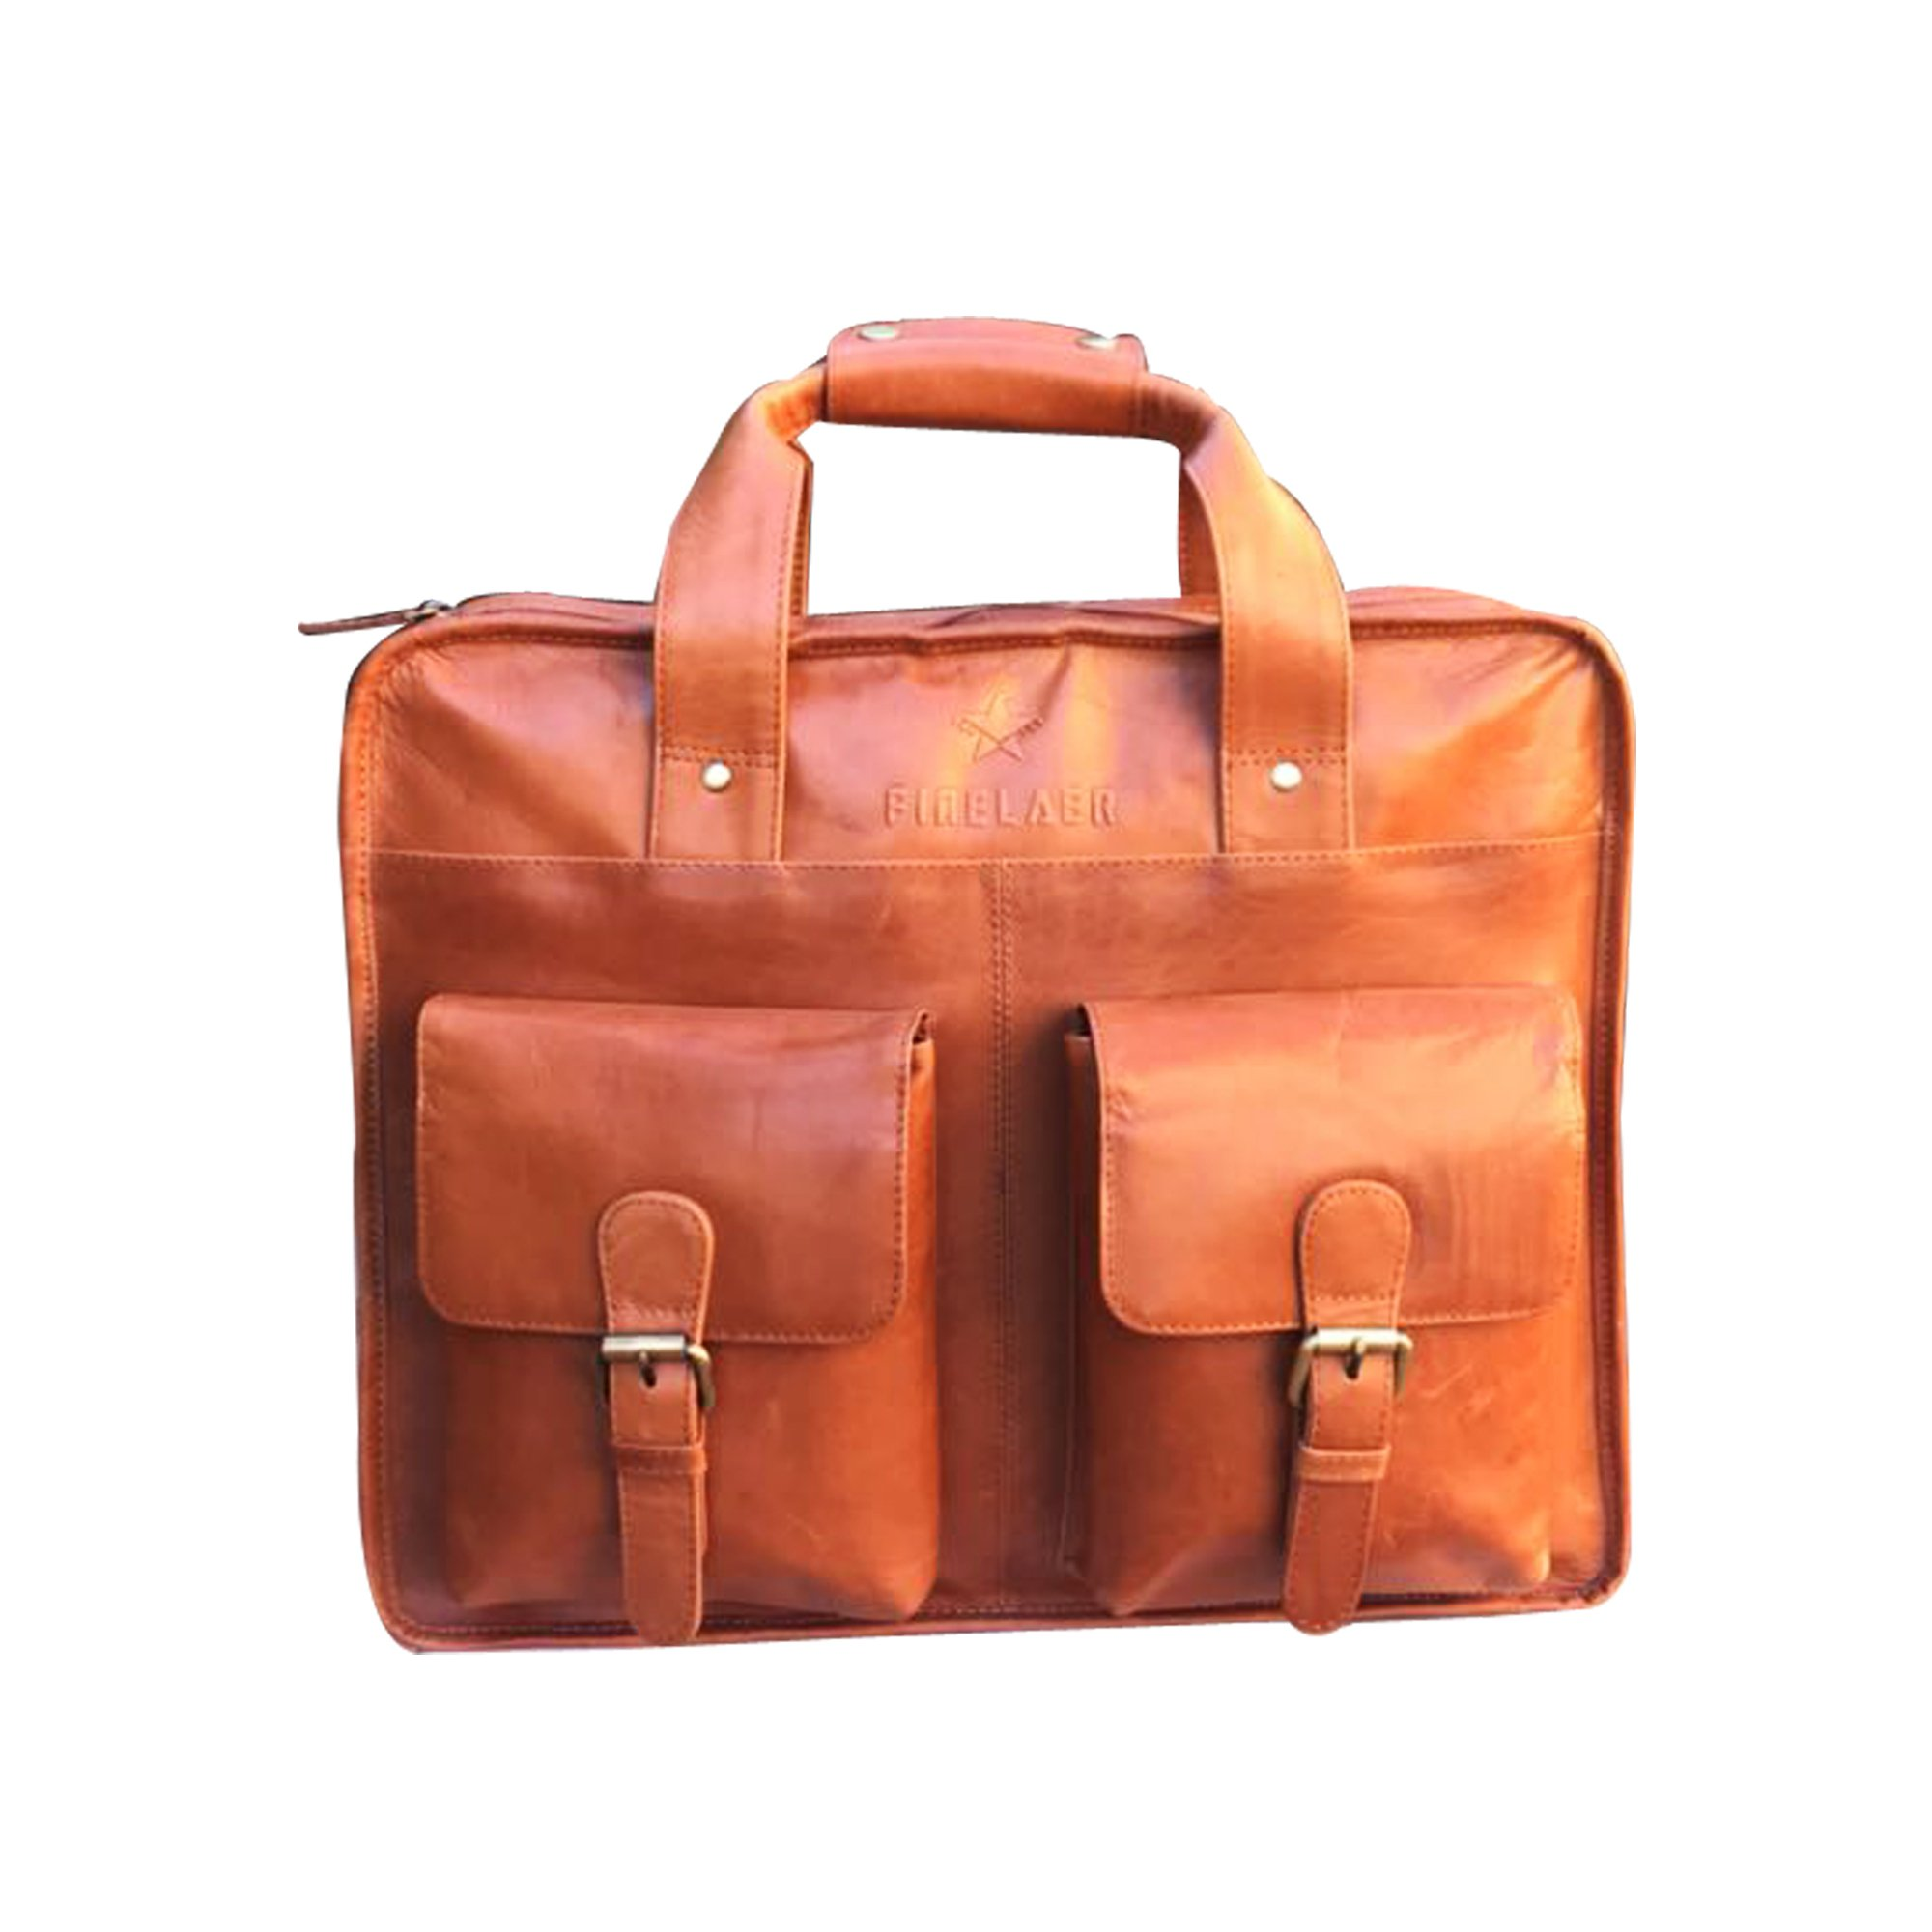 Finelaer Leather Laptop Computer Messenger Bag with Pockets for laptops Macbooks 14'' Brown by FINELAER (Image #1)